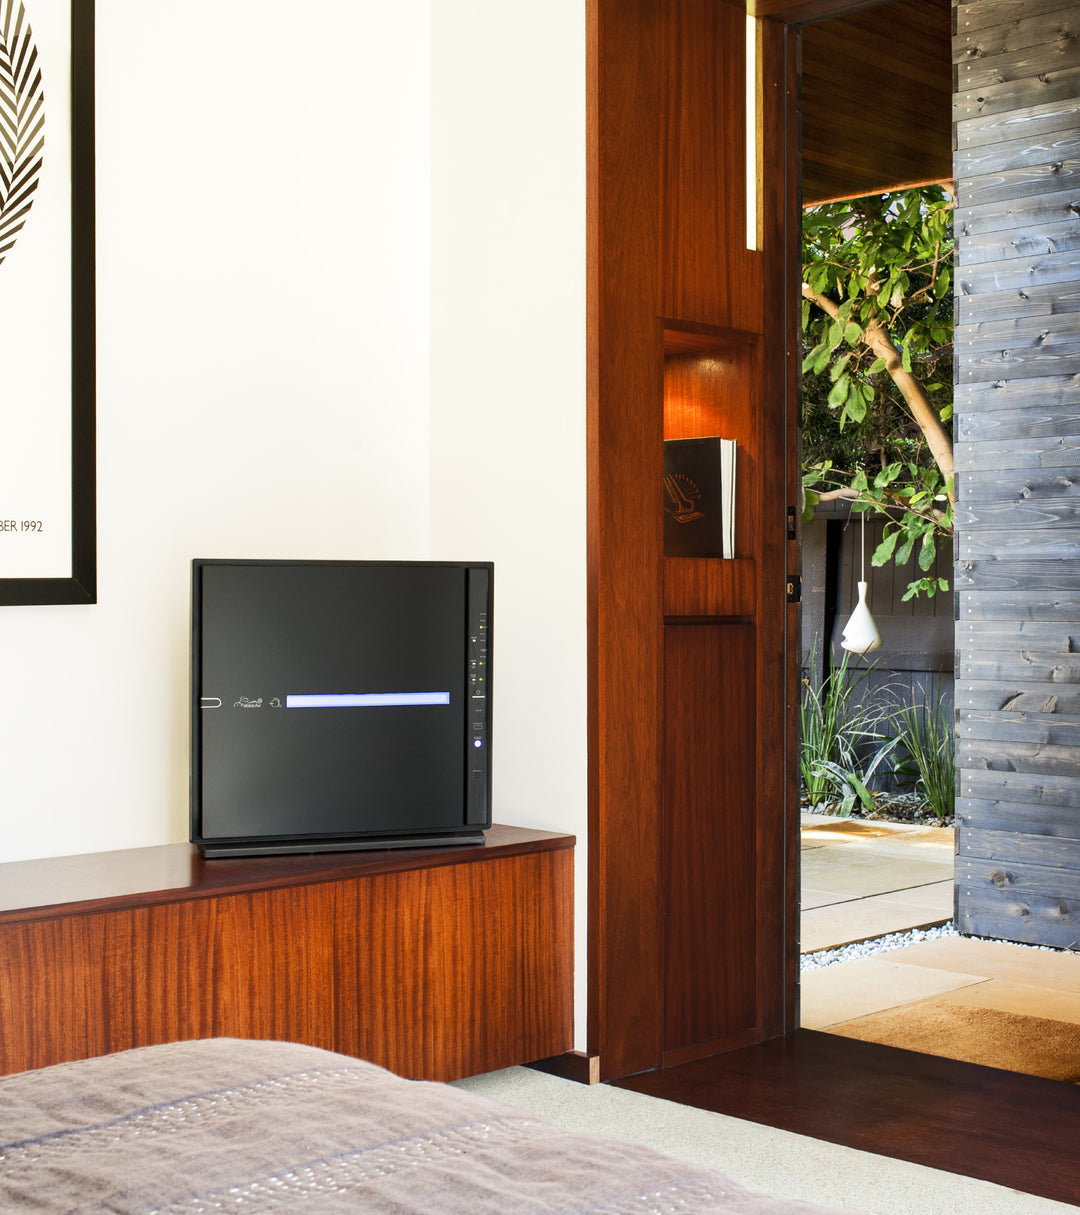 MinusA2 air purifier in the bedroom